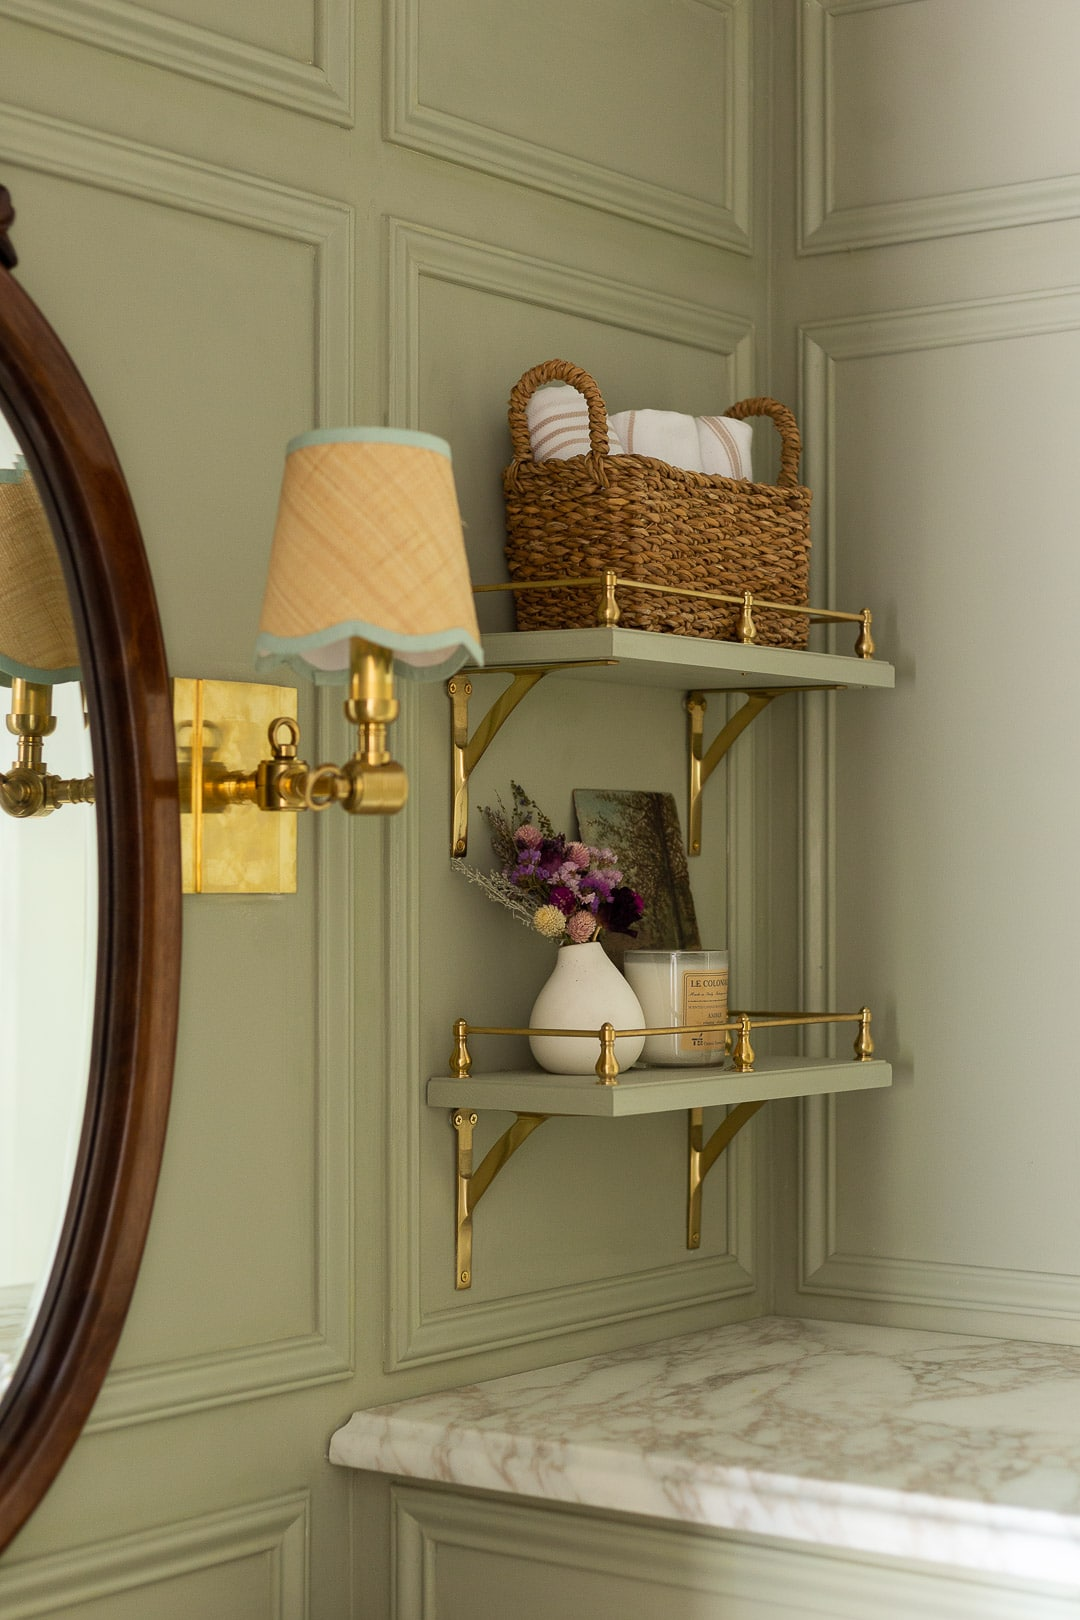 open-brass-gallery-rail-shelves